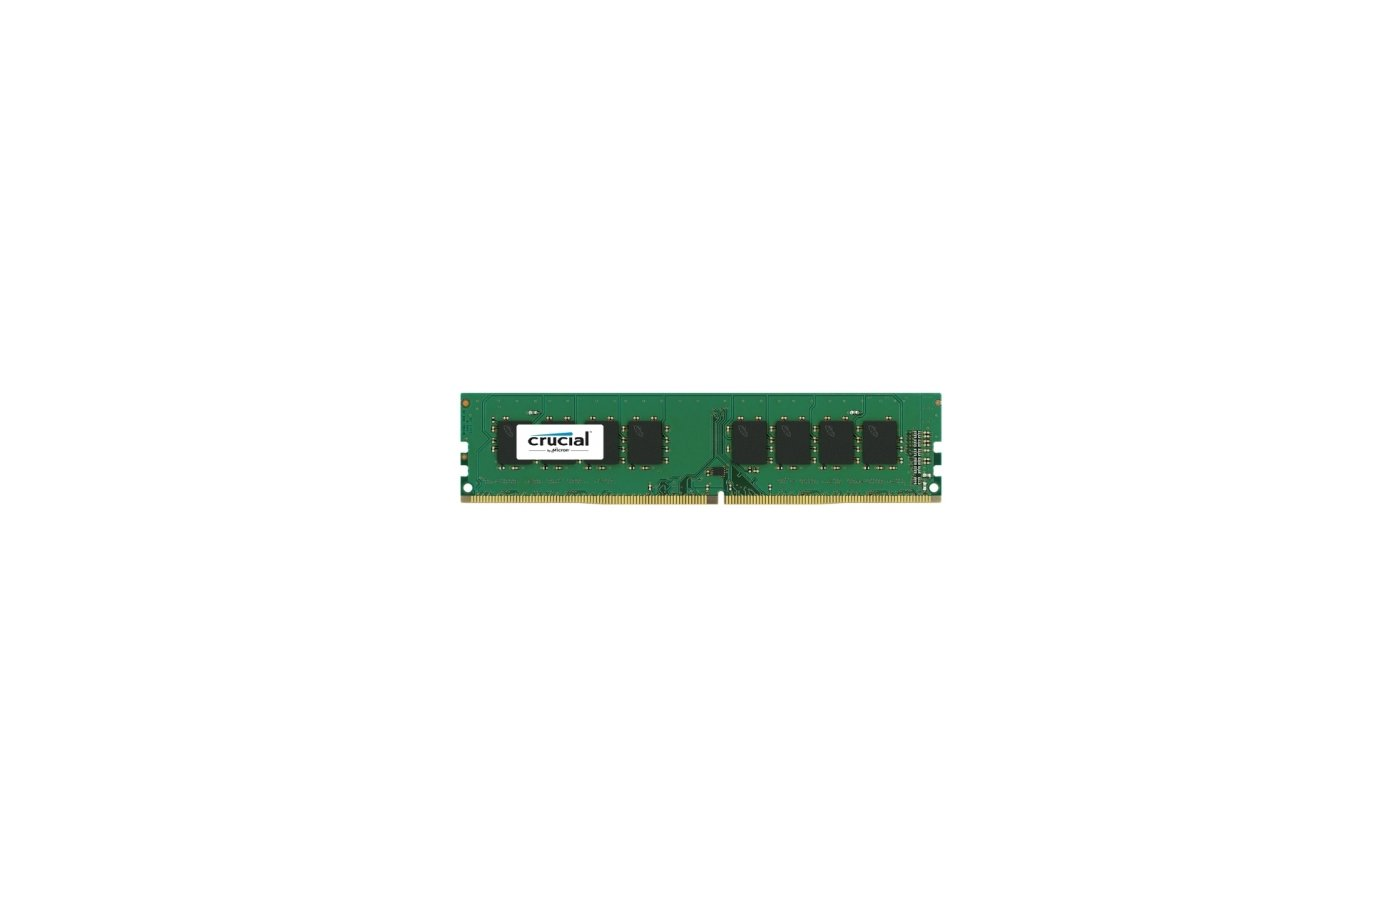 Оперативная память Crucial CT4G4DFS8213 RTL PC4-17000 DDR4 4Gb 2133MHz CL15 DIMM